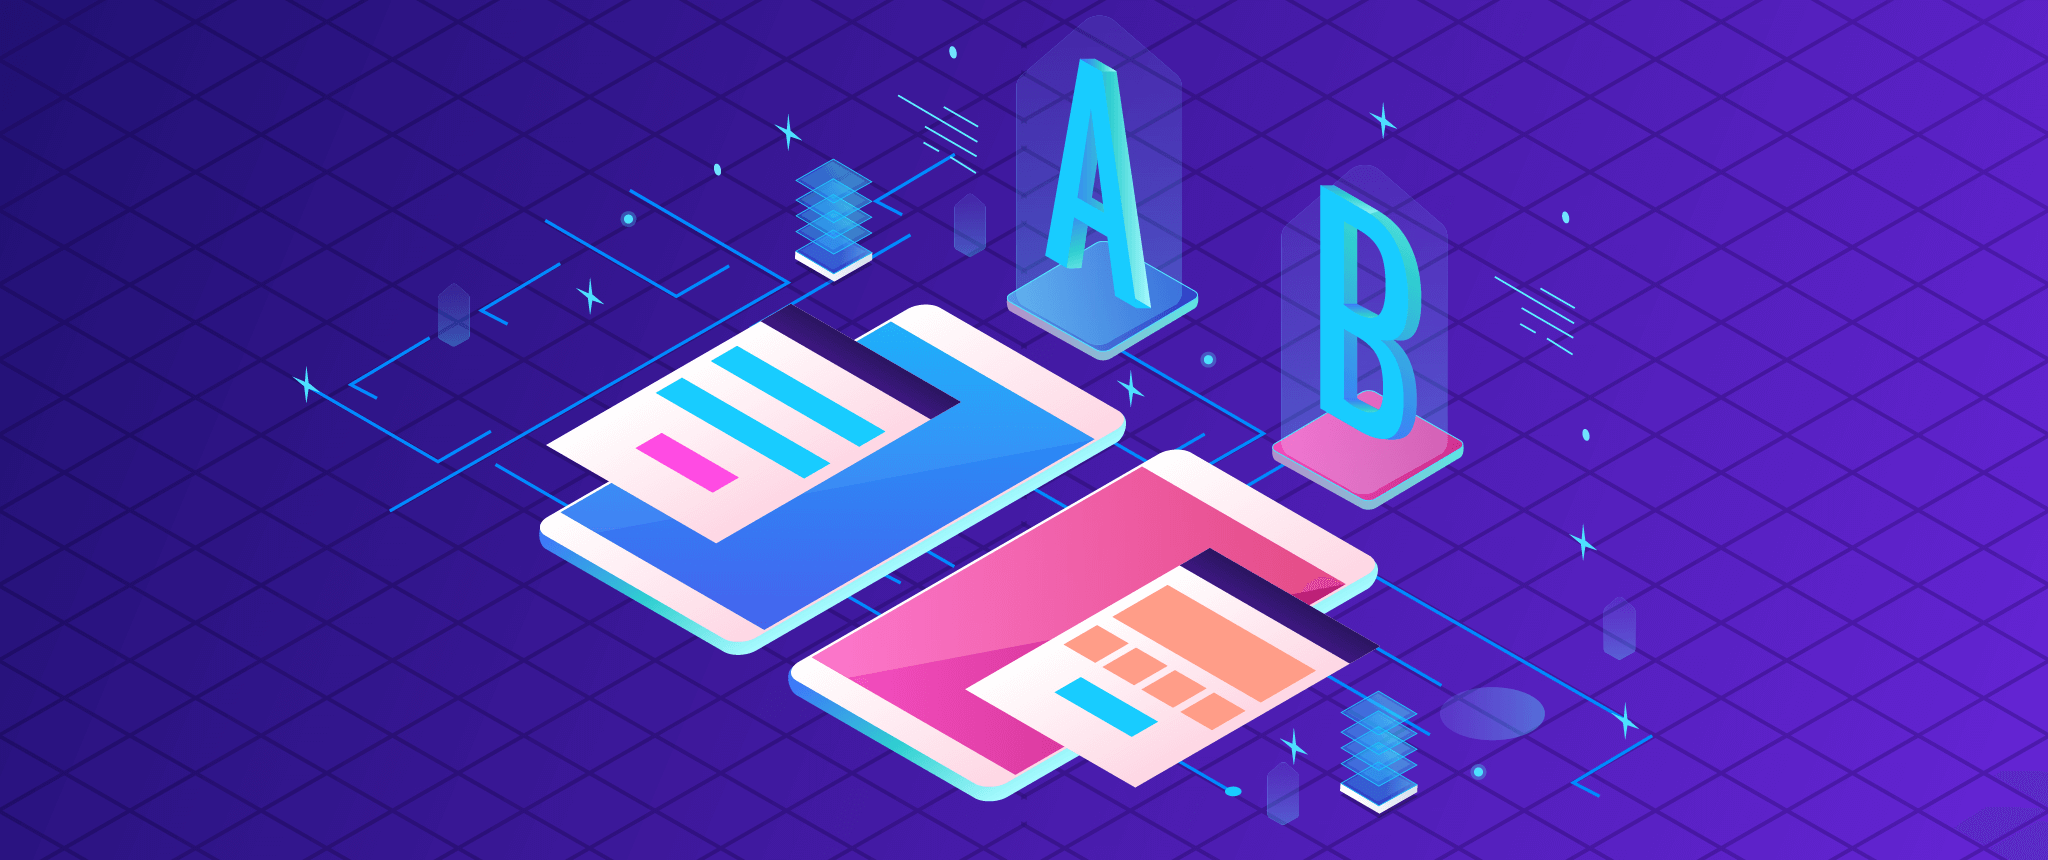 How to Design A/B Testing for More Effective Campaigns